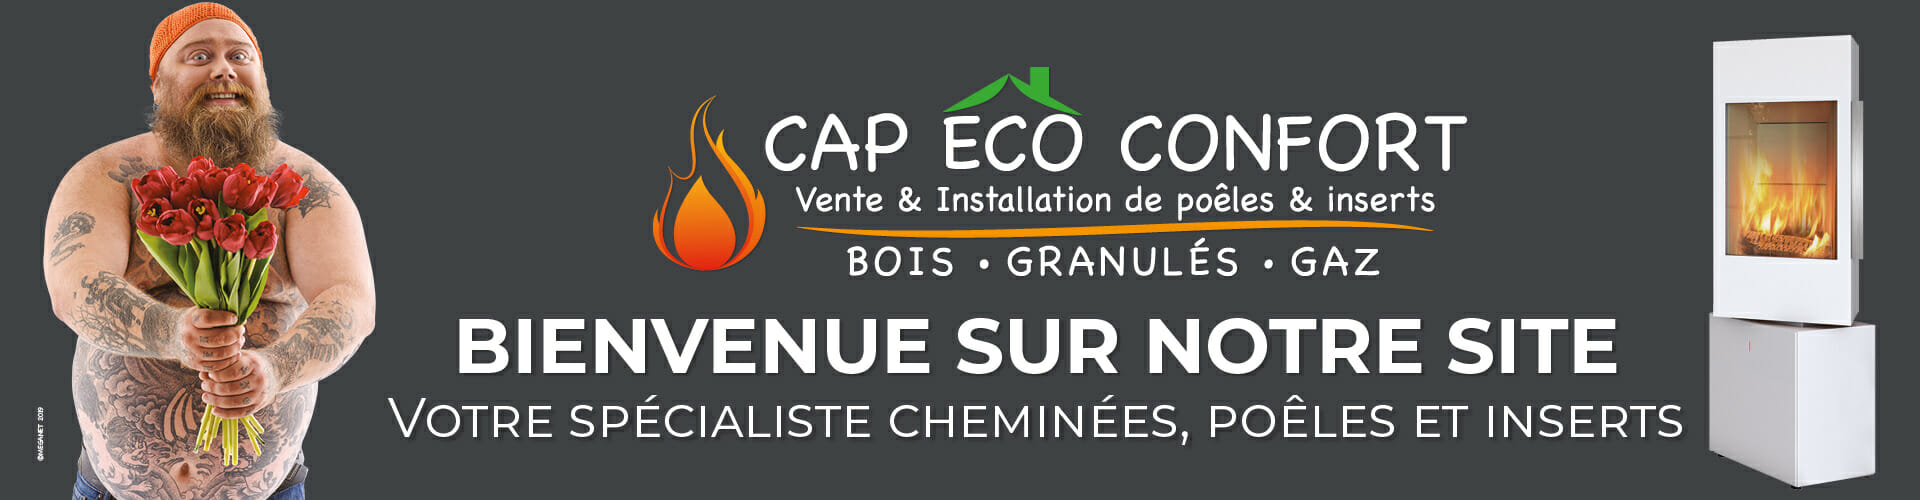 cap eco confort showroom a paroy